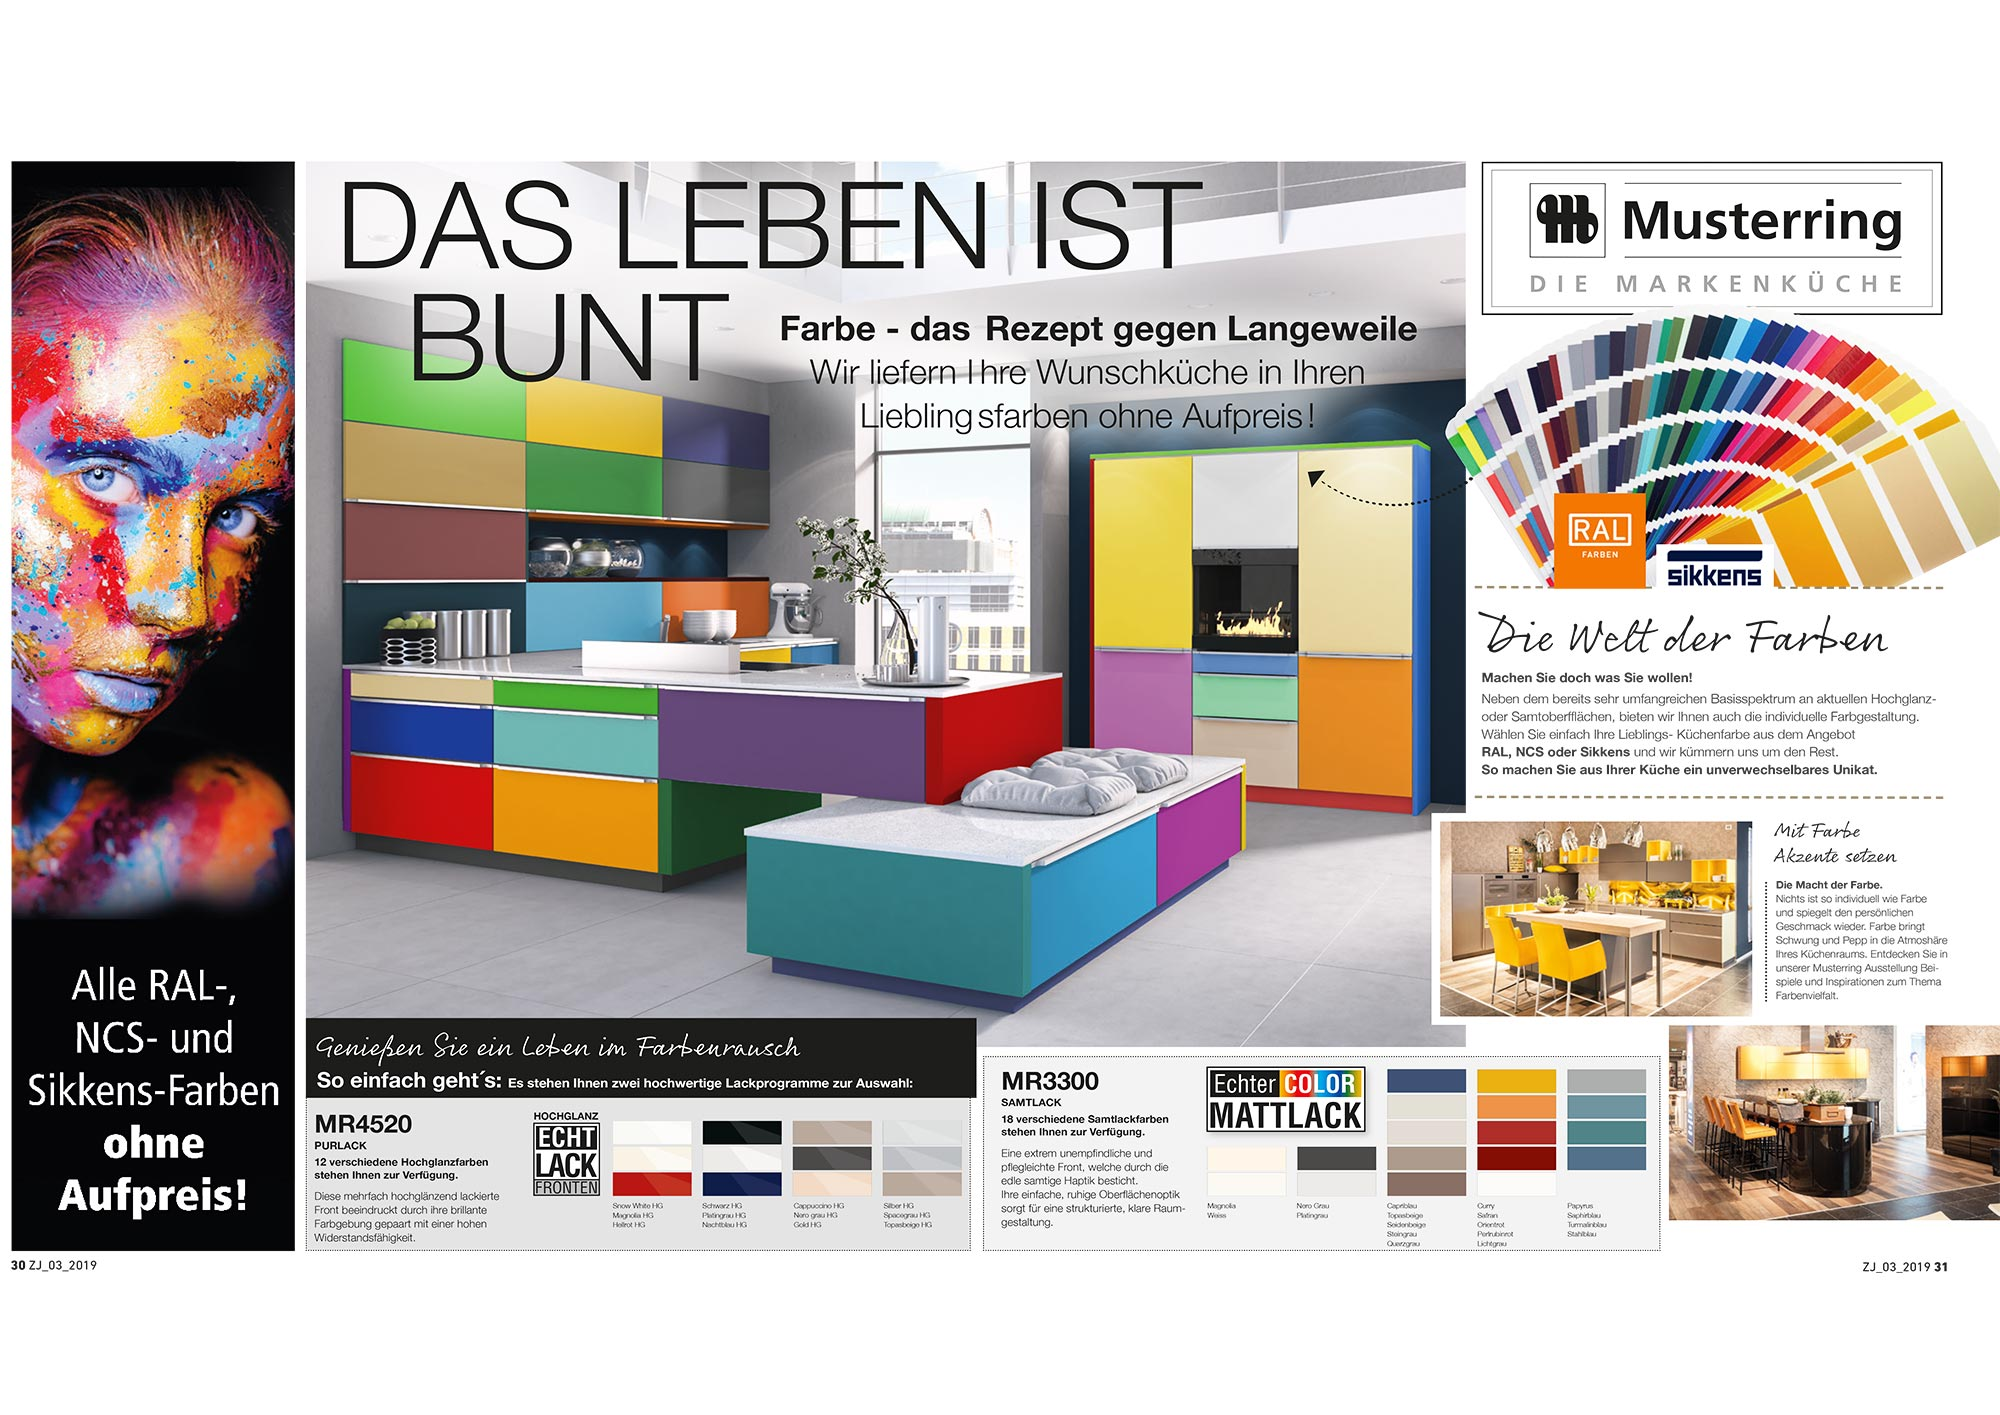 kche aktuell berlin amazing moderne kchen bild with kche aktuell berlin simple berlin bornheim. Black Bedroom Furniture Sets. Home Design Ideas